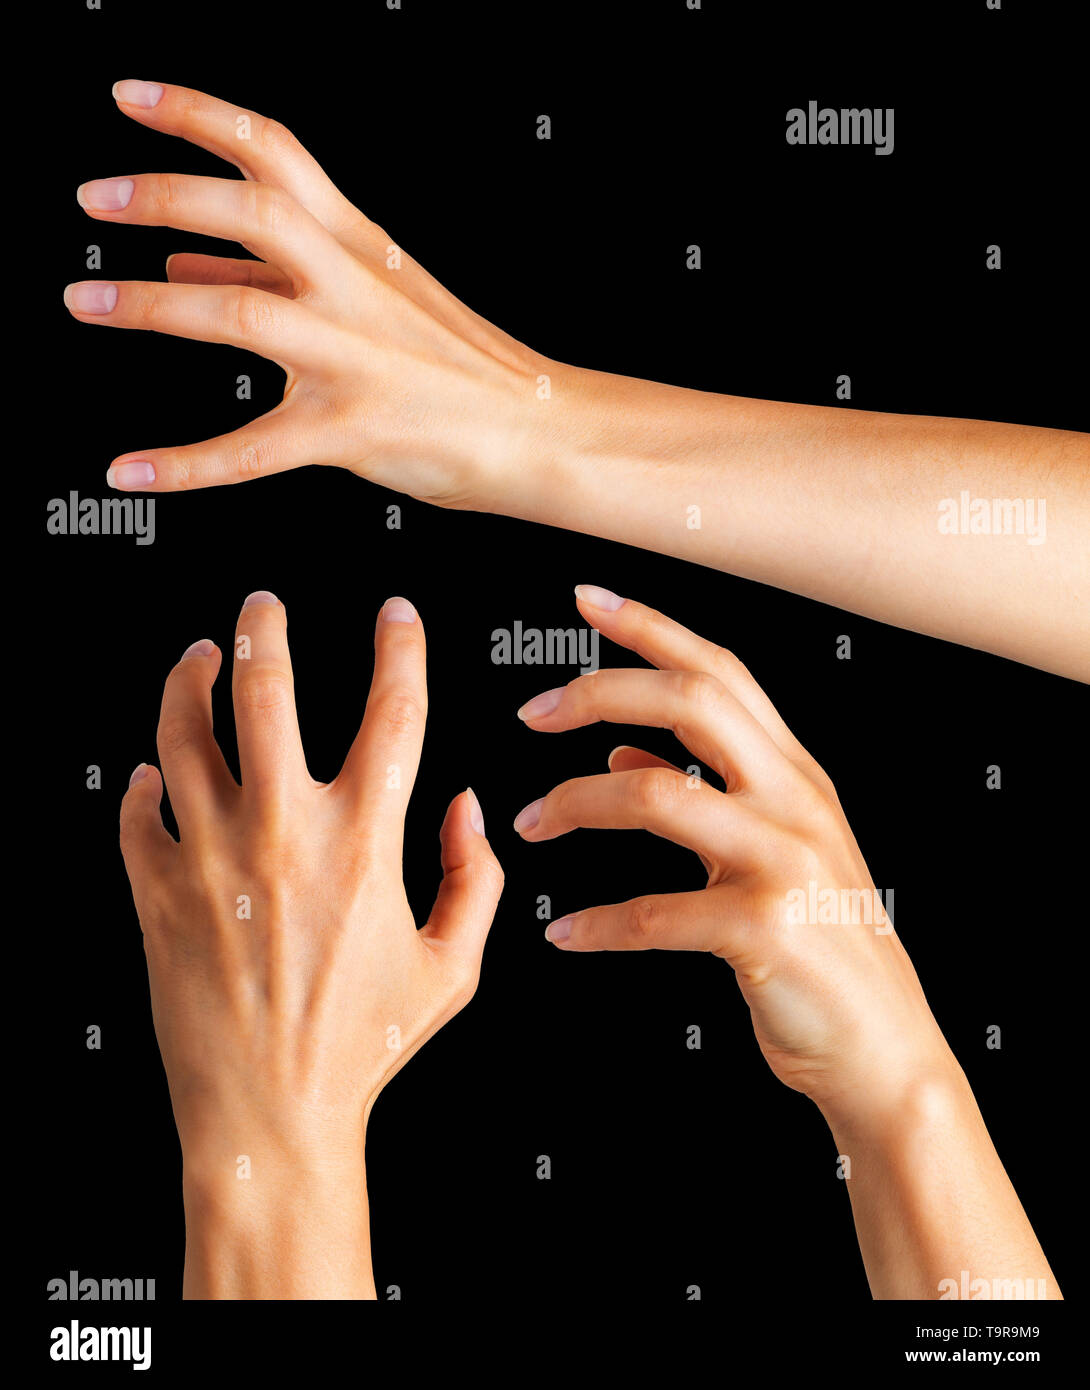 Woman hands with crooked fingers showing magic trick or holding ball - Stock Image